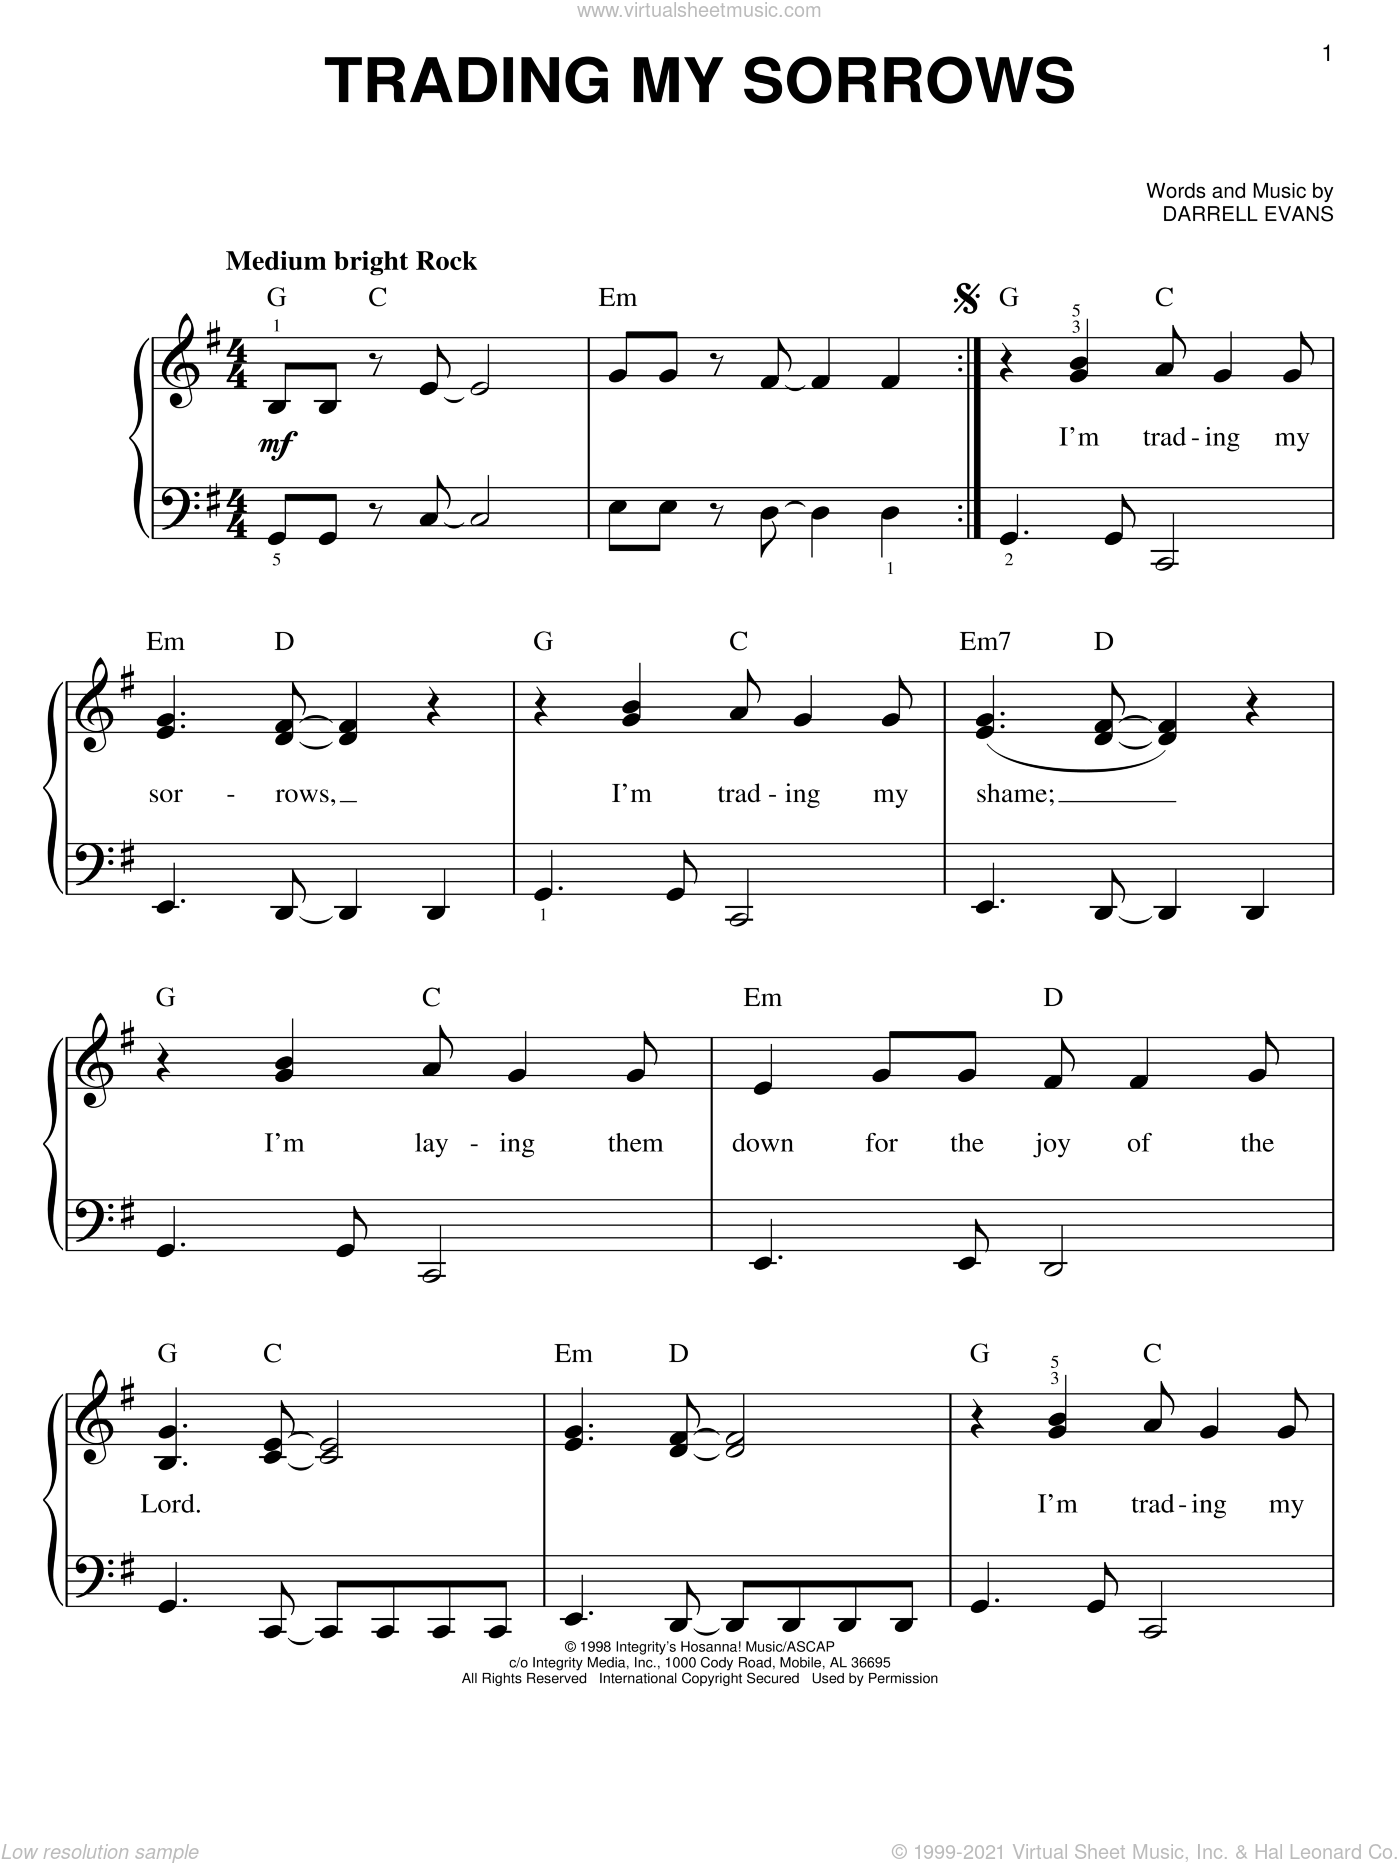 Trading My Sorrows sheet music for piano solo by Darrell Evans, easy skill level